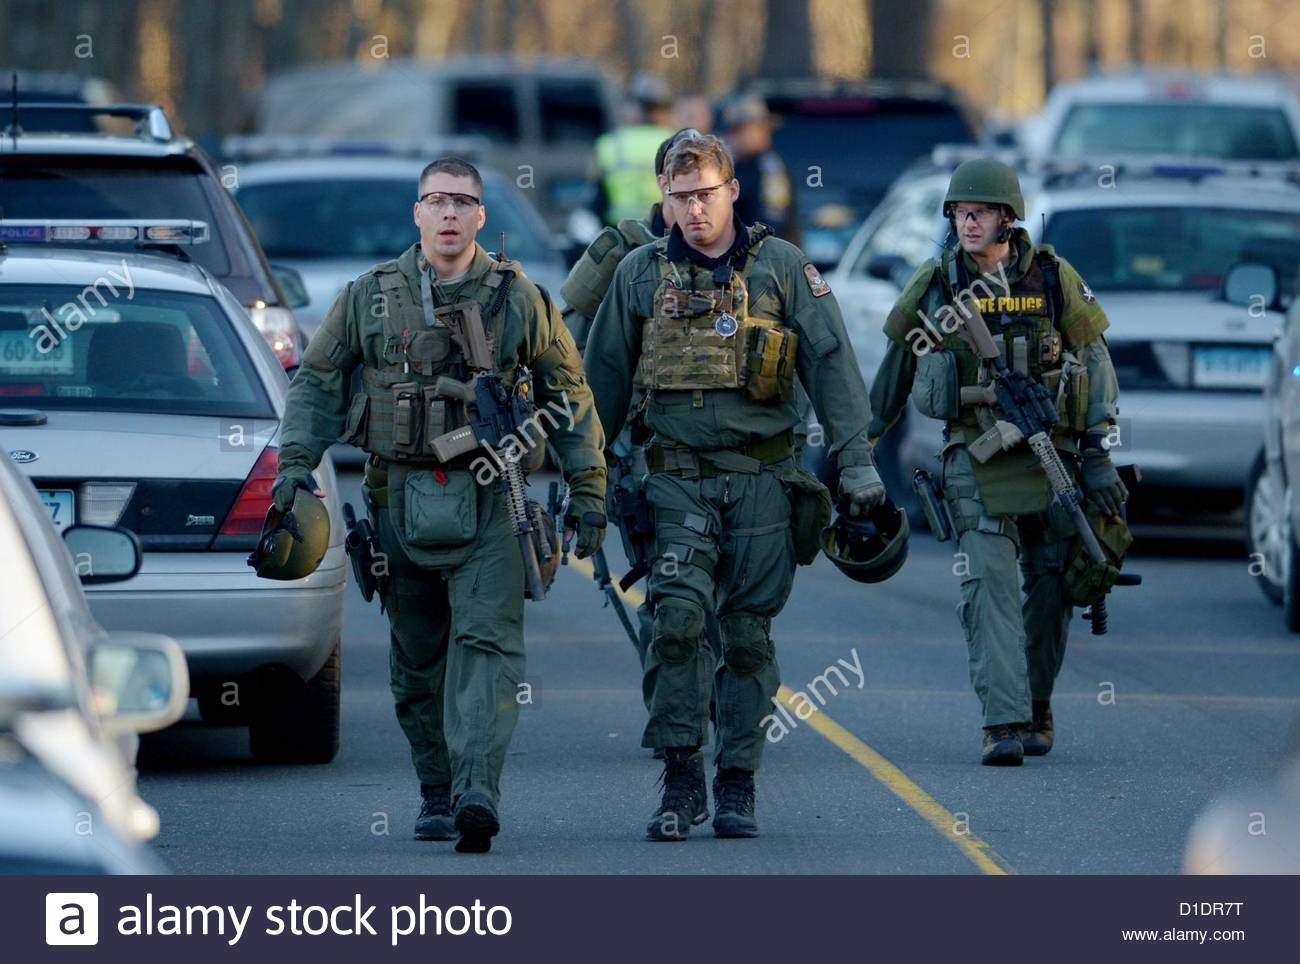 Connecticut shooting?